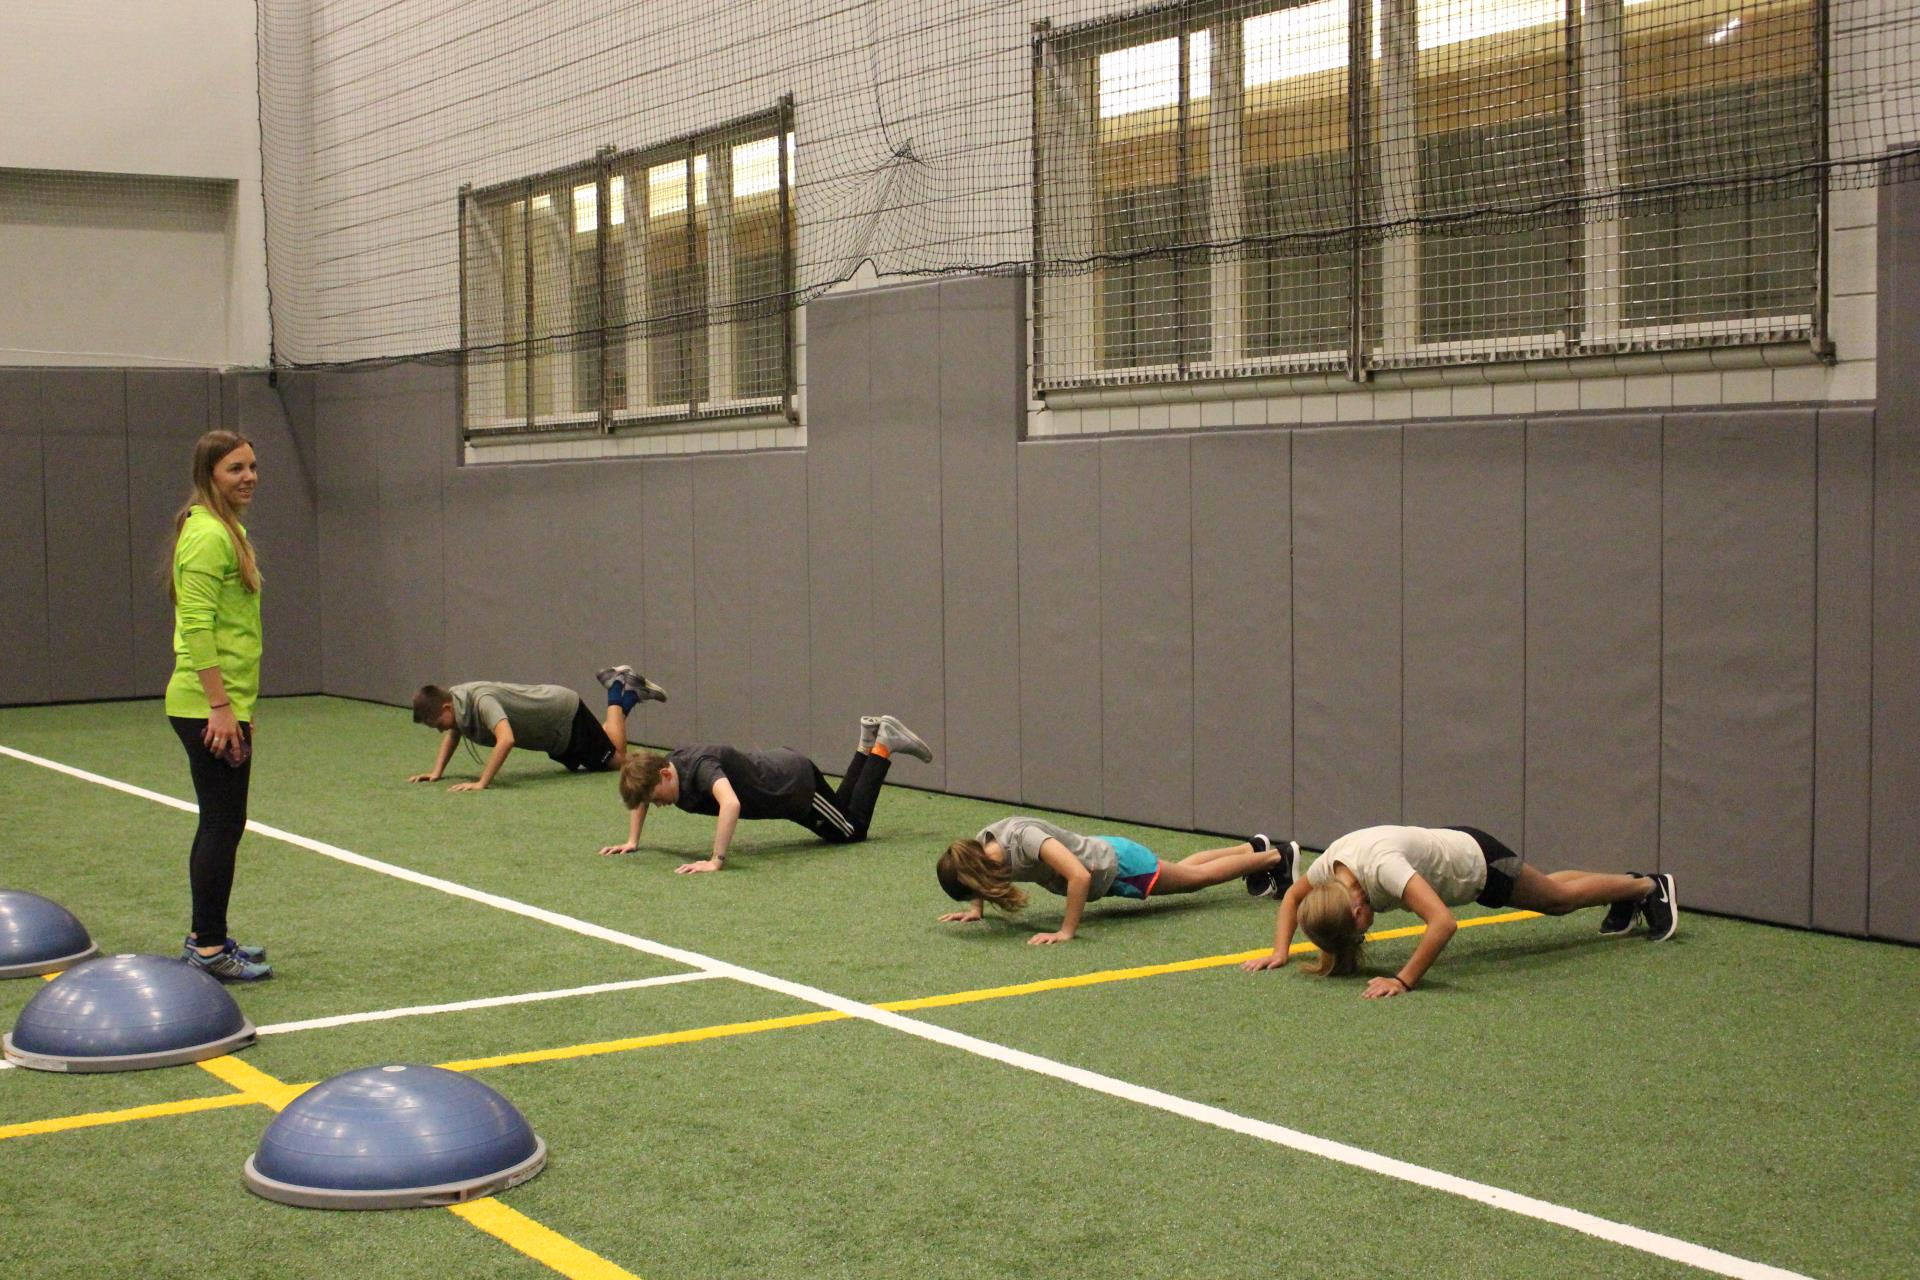 Teens doing pushups on turf field with trainer